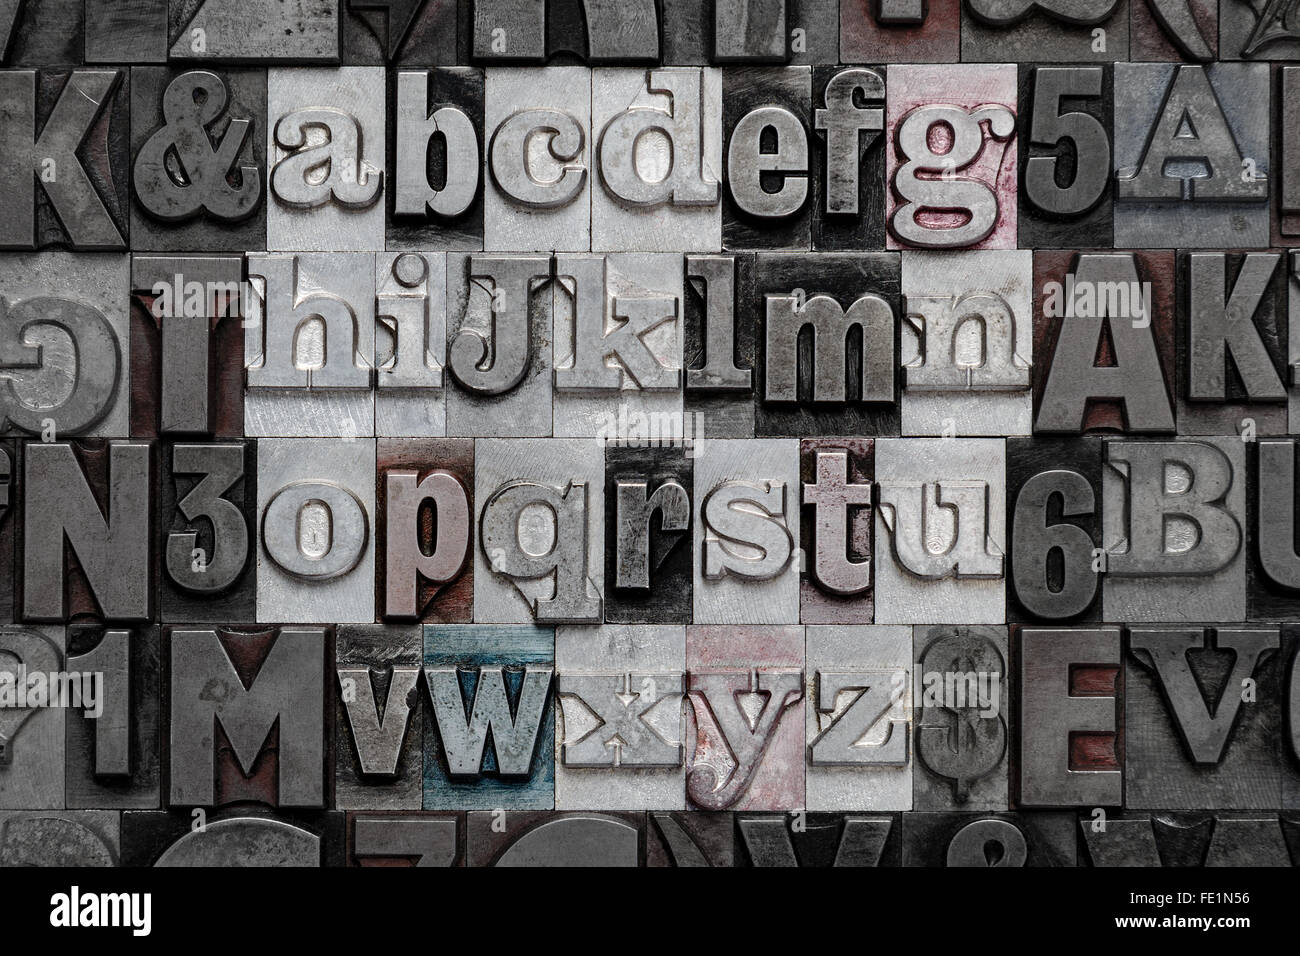 Lowercase Metal Wall Letters Letters From The Alphabet In Old Lowercase Metal Letterpress Stock